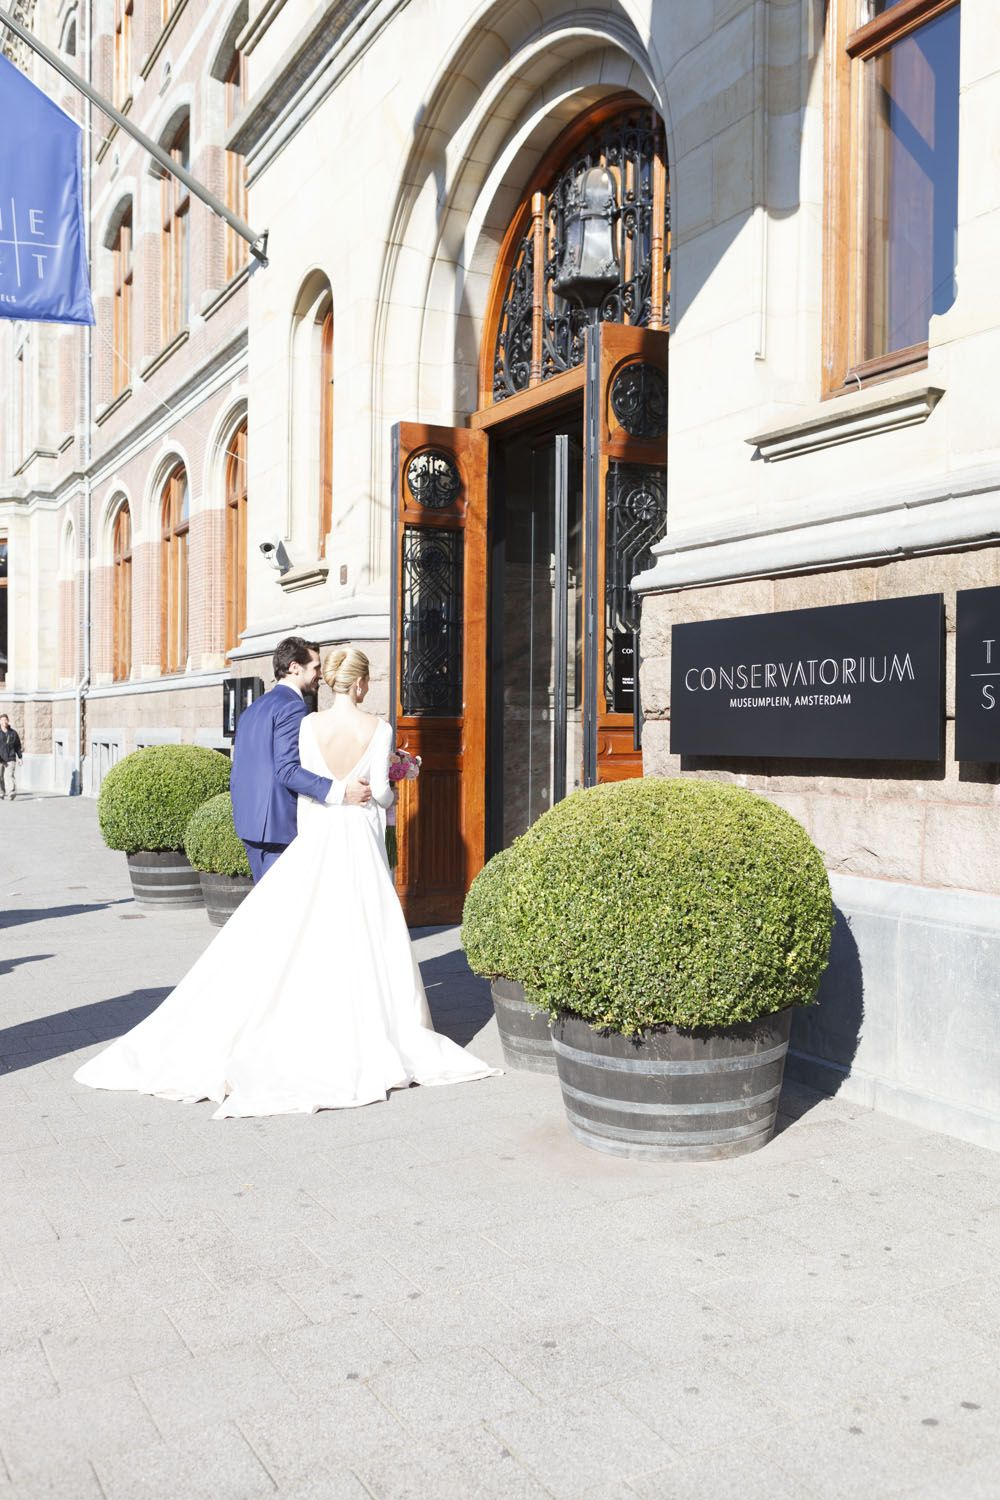 Wedding in the Netherlands | Weddings Abroad Guide